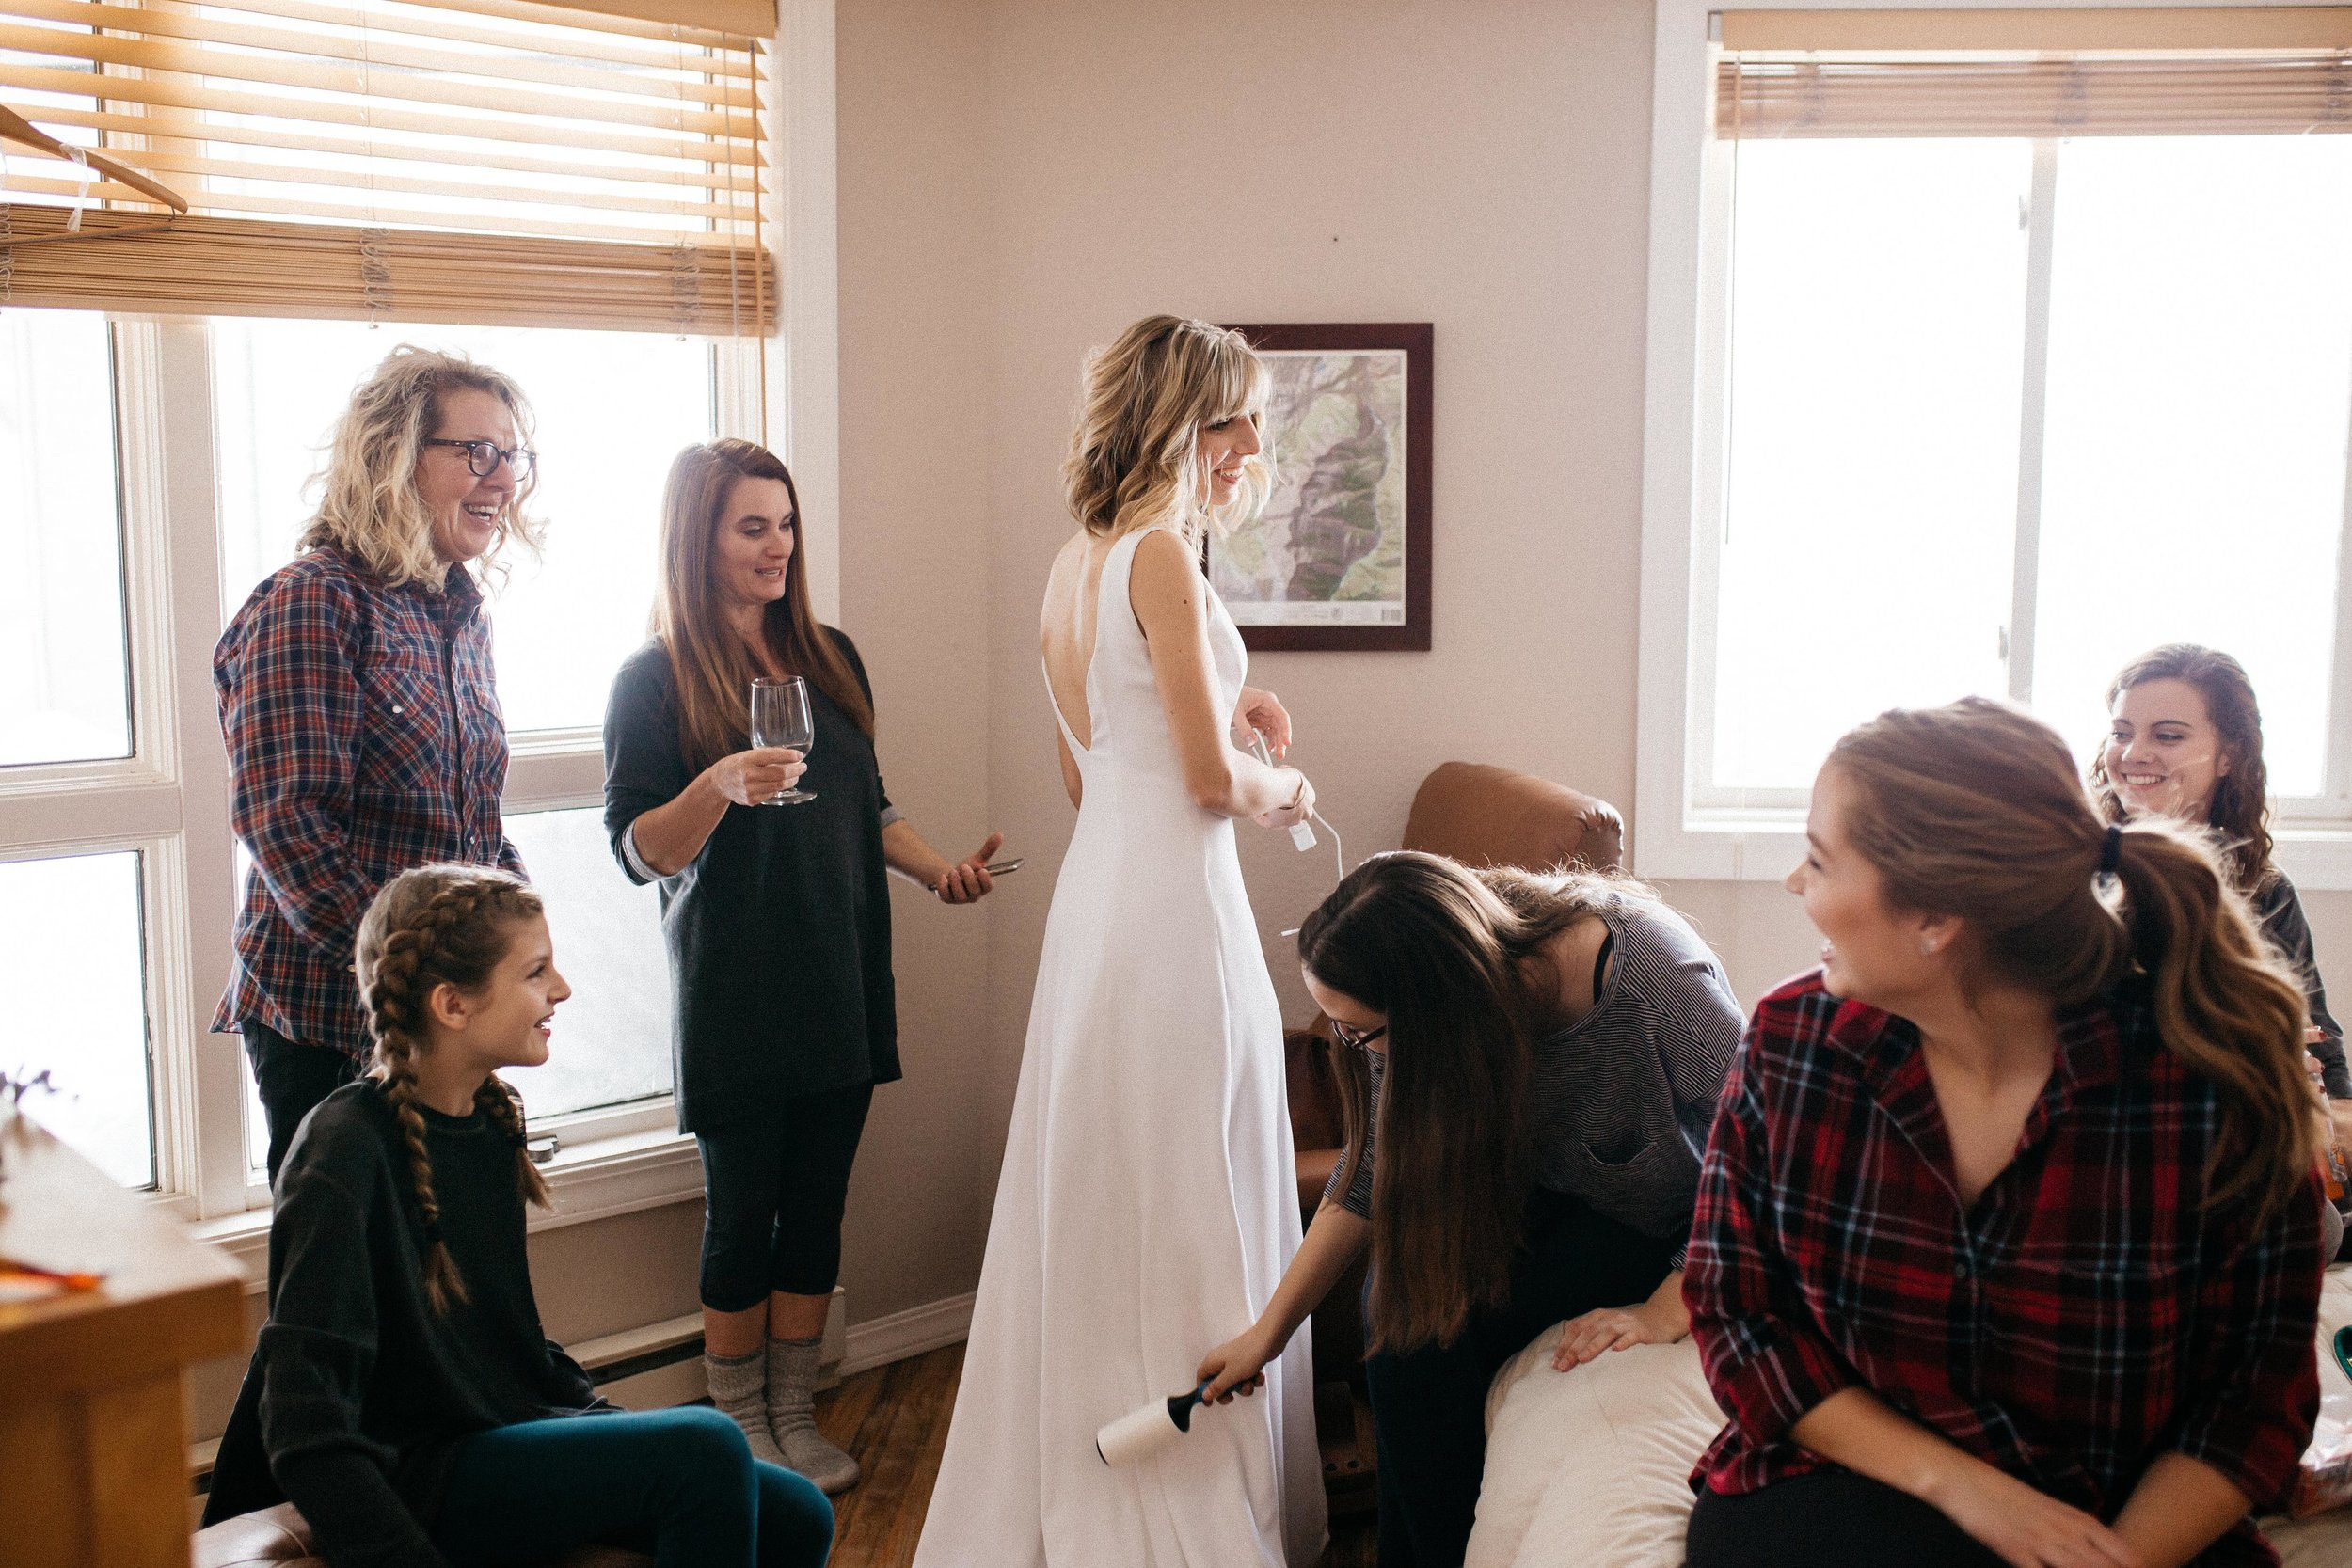 In the morning, so many of my gal pals crowded into my friend Ellie's room, where I got ready. These girls were my unofficial bridal party and it was the most special time to share with them. I especially appreciated my friend Rachel making sure we were lint-free the entire day (I highly recommend her services).